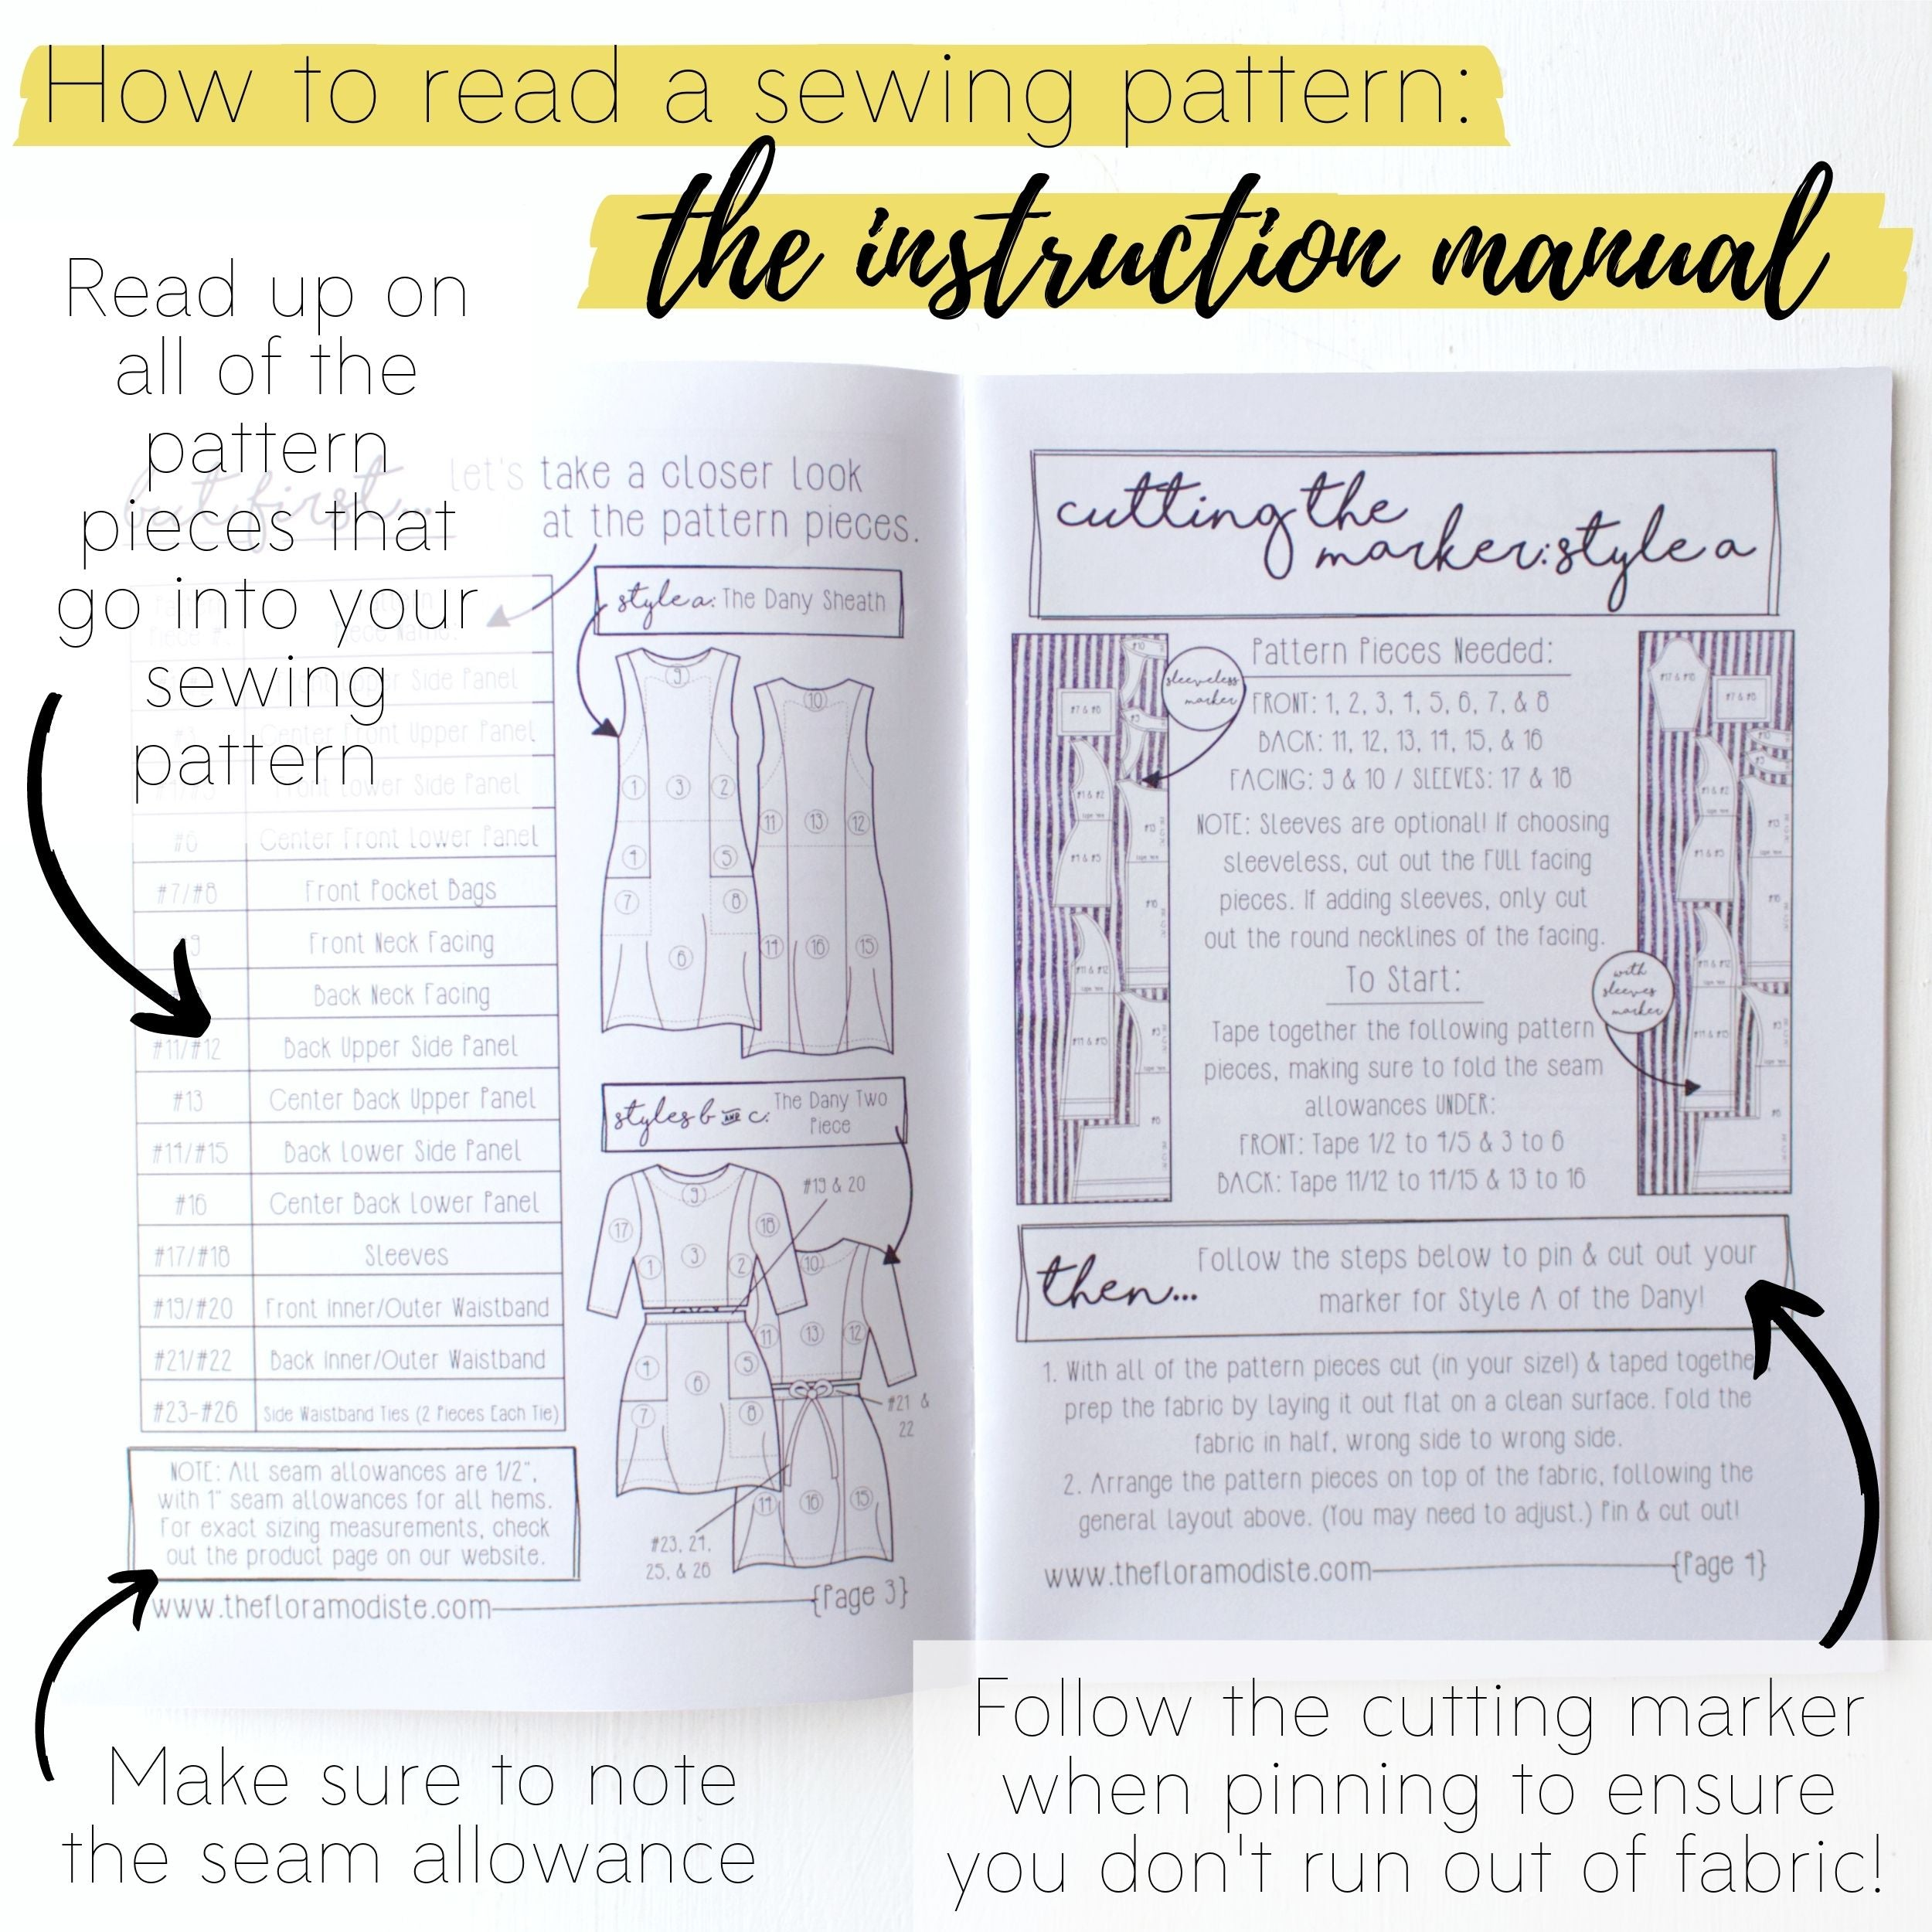 How to read a sewing pattern: The instruction manual